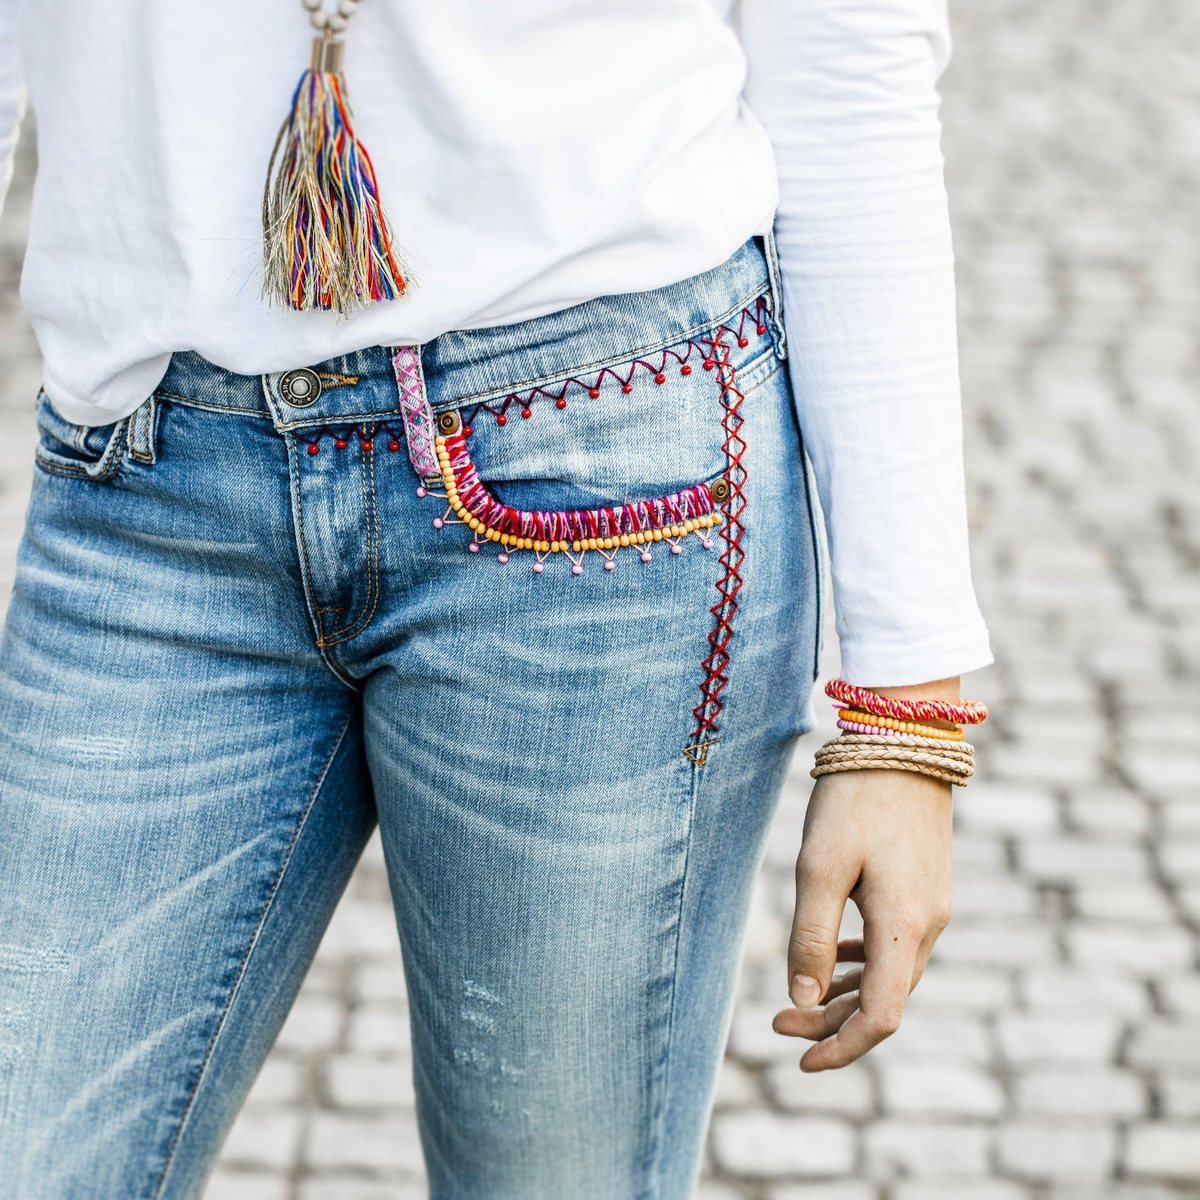 Make your own BOHO style jeans